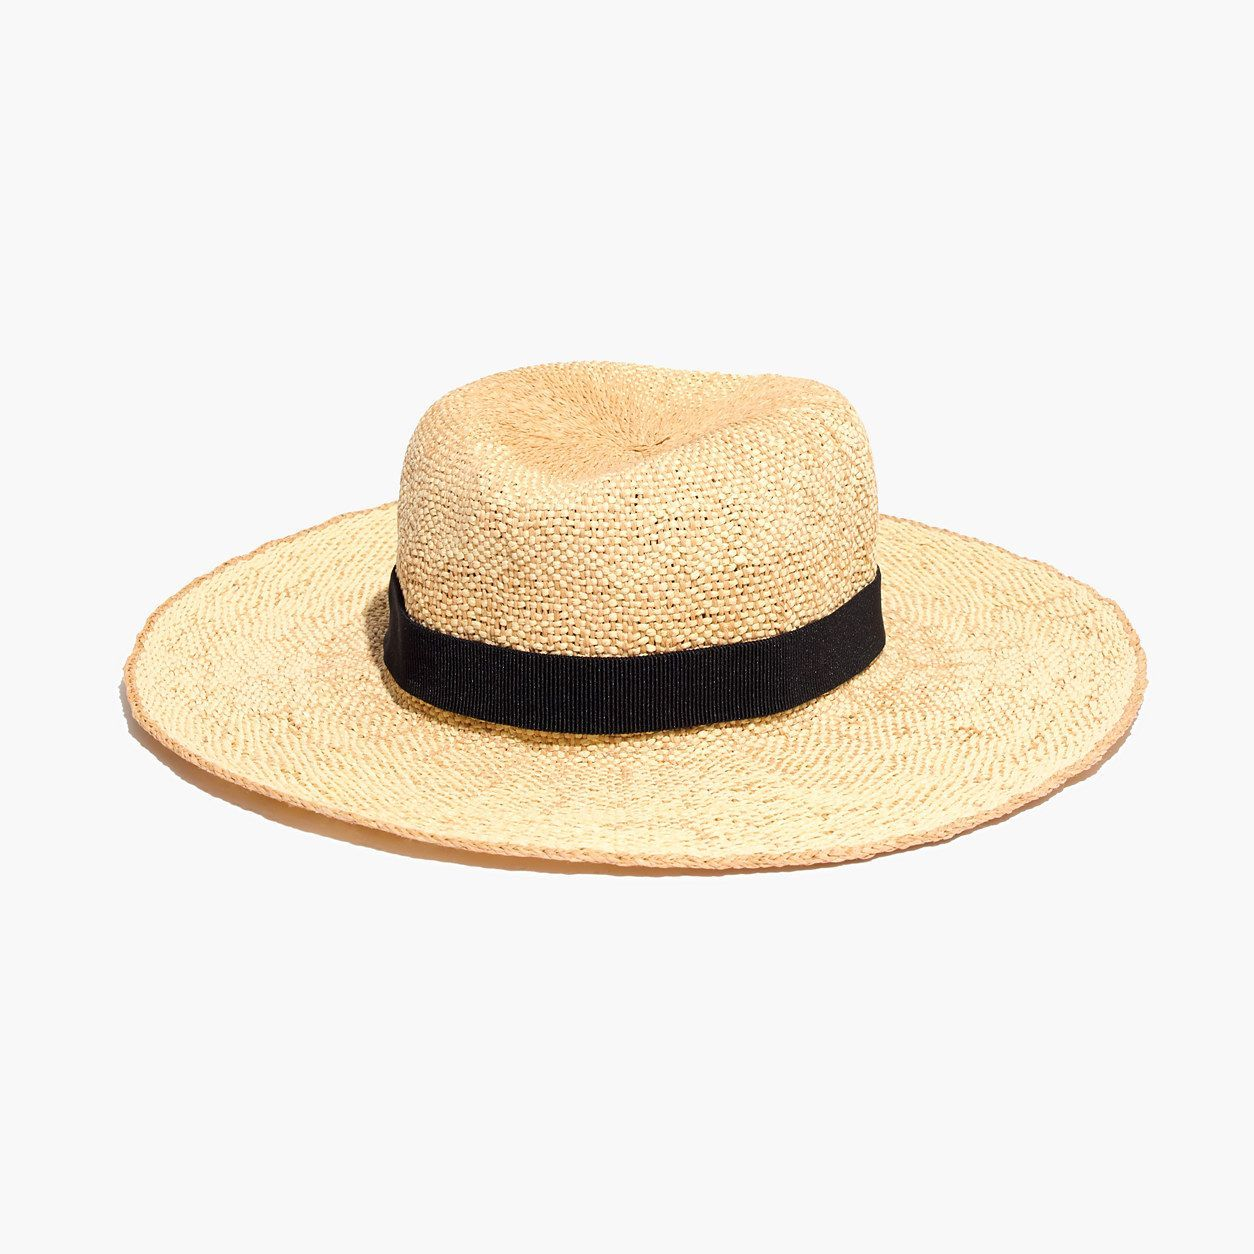 35242663 perfect for summer. Madewell Packable Straw Hat on ShopStyle | Hats ...